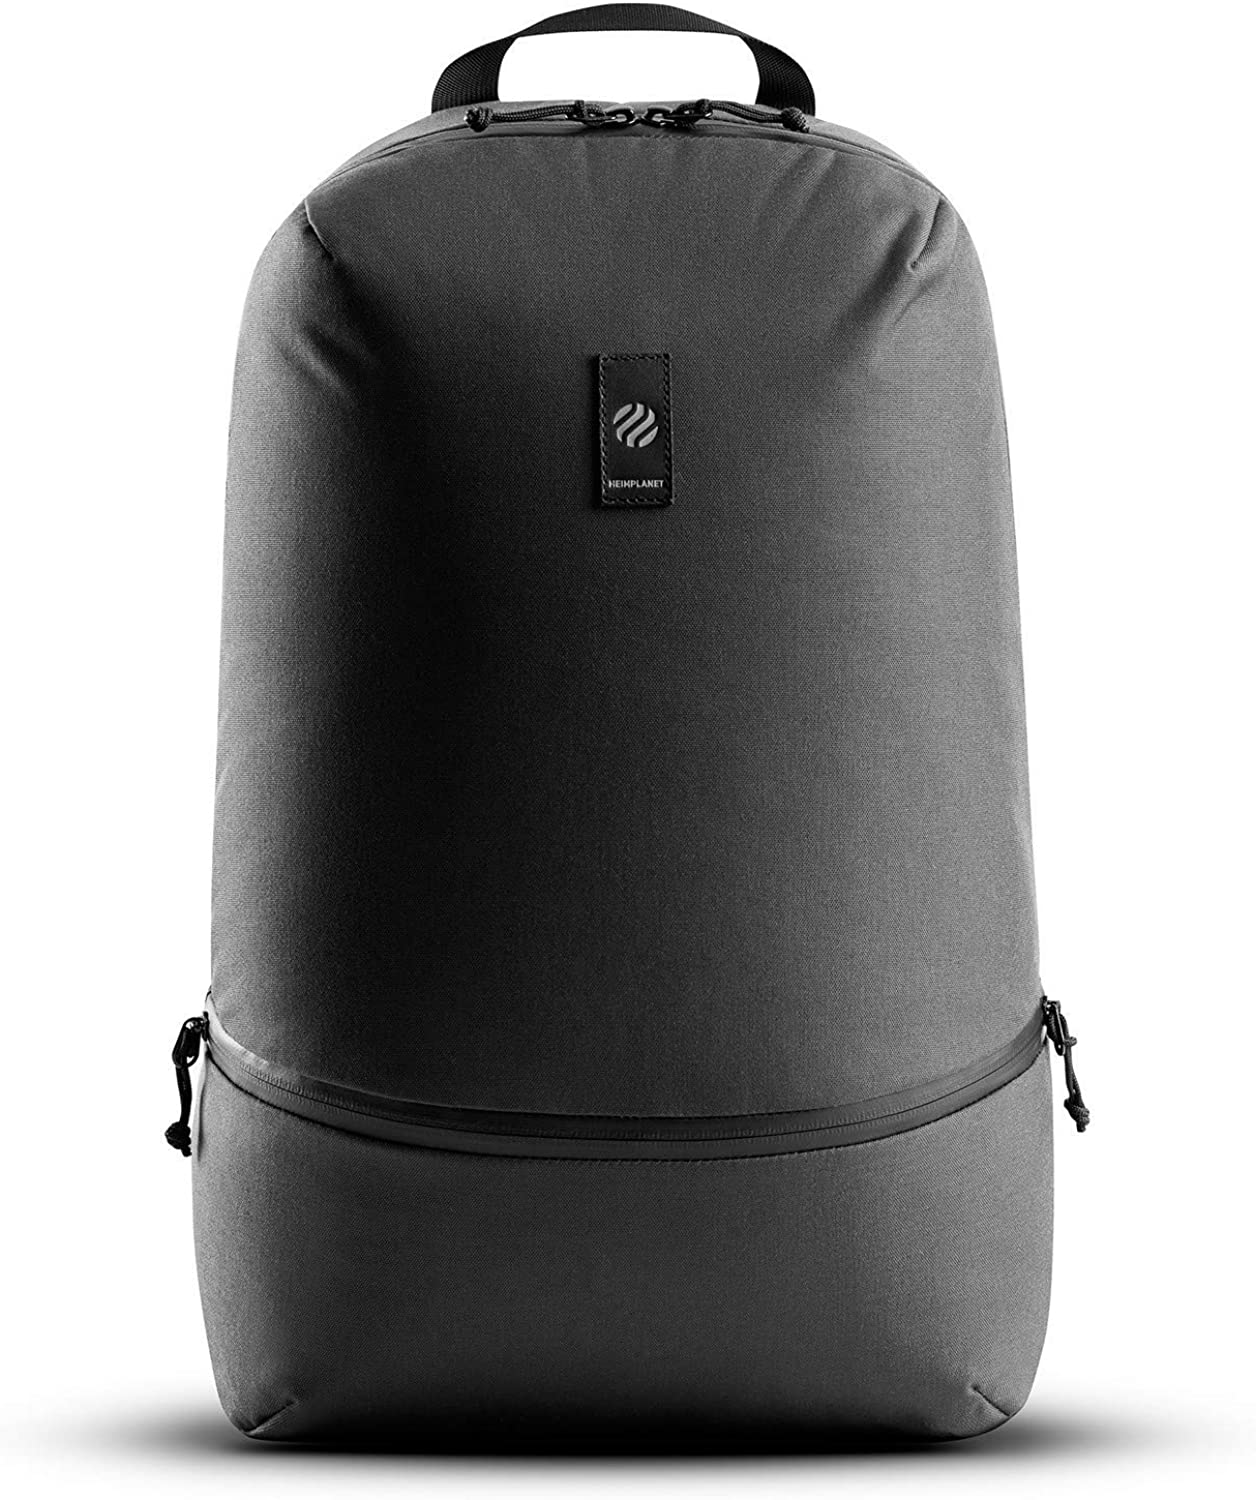 "Heimplanet Original | Monolith Minimal Rucksack | Minimalist Backpack Incl. 15"" Laptop Compartment"